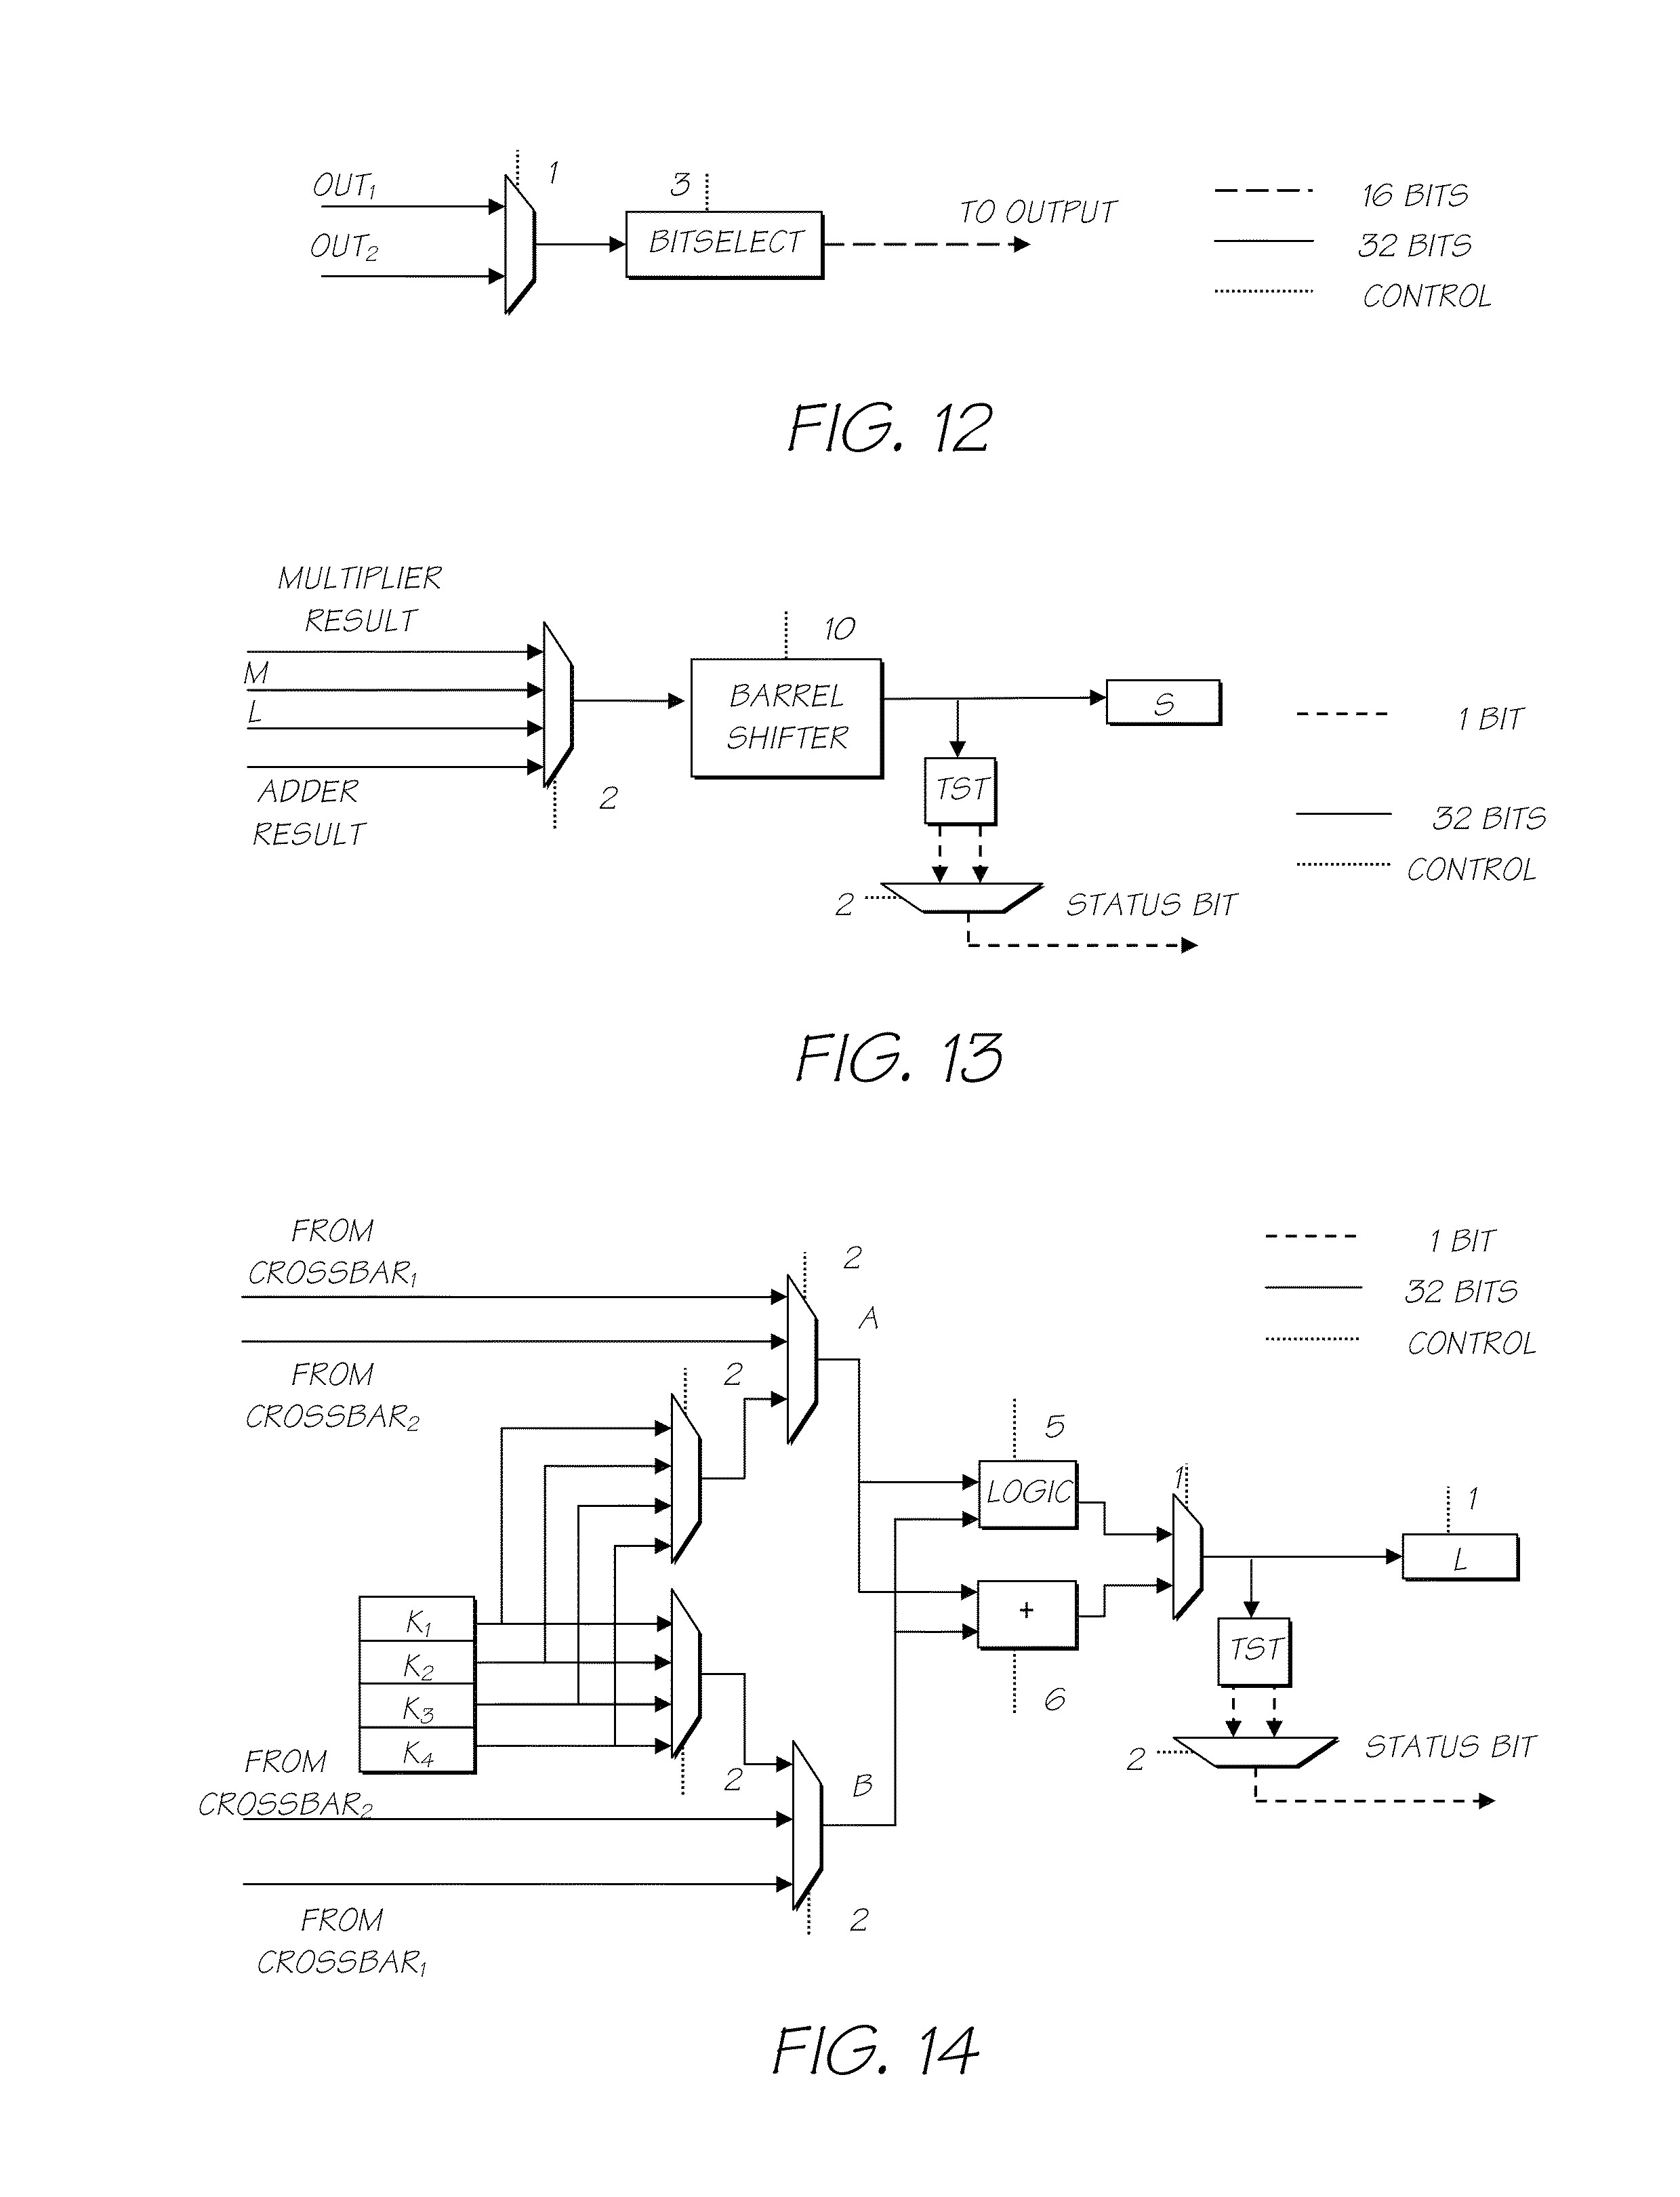 Hydro Vac Schematic Us B2 Portable Device with Image Sensor and Quad Of Hydro Vac Schematic